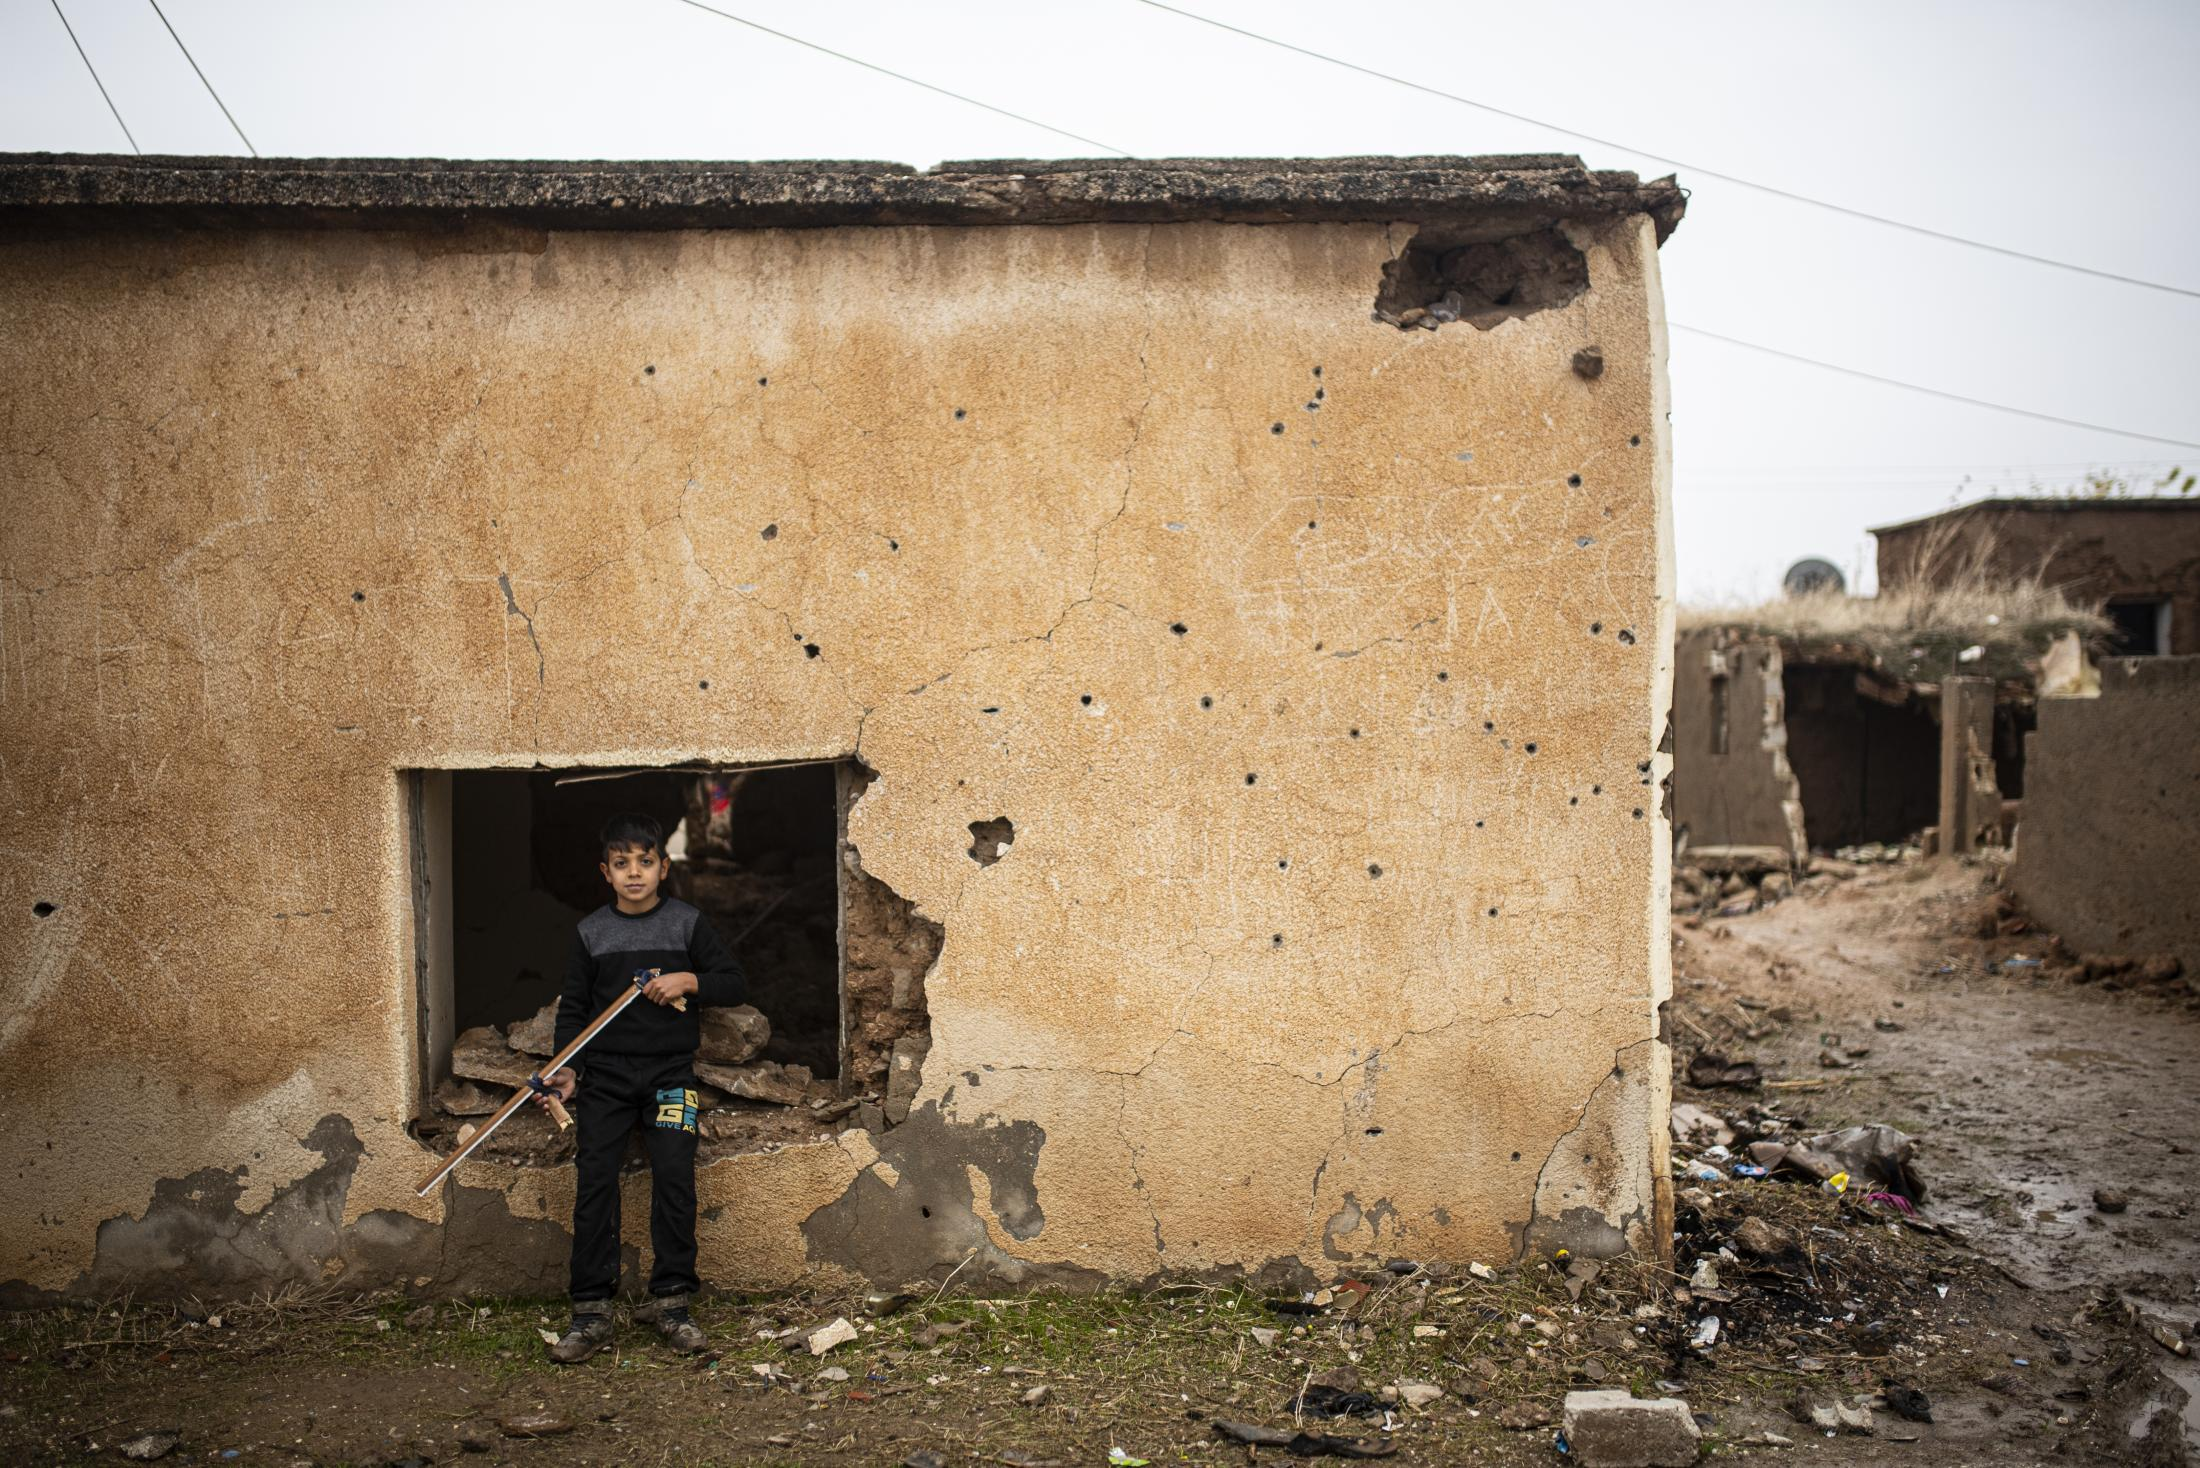 Two children plays in the destroyed streets of Tel Nasri, few kilometers far away from the frontline. After the withdrawal of US troops from northern Syria in October 2019, Turkey launched an offensive against the predominantly Kurdish areas in the northeast of the country along Islamist forces. Calls for war crimes investigations into the conduct of Ankara-backed militias are mounting ever since. (Andoni Lubaki / Euskal Fondoa)